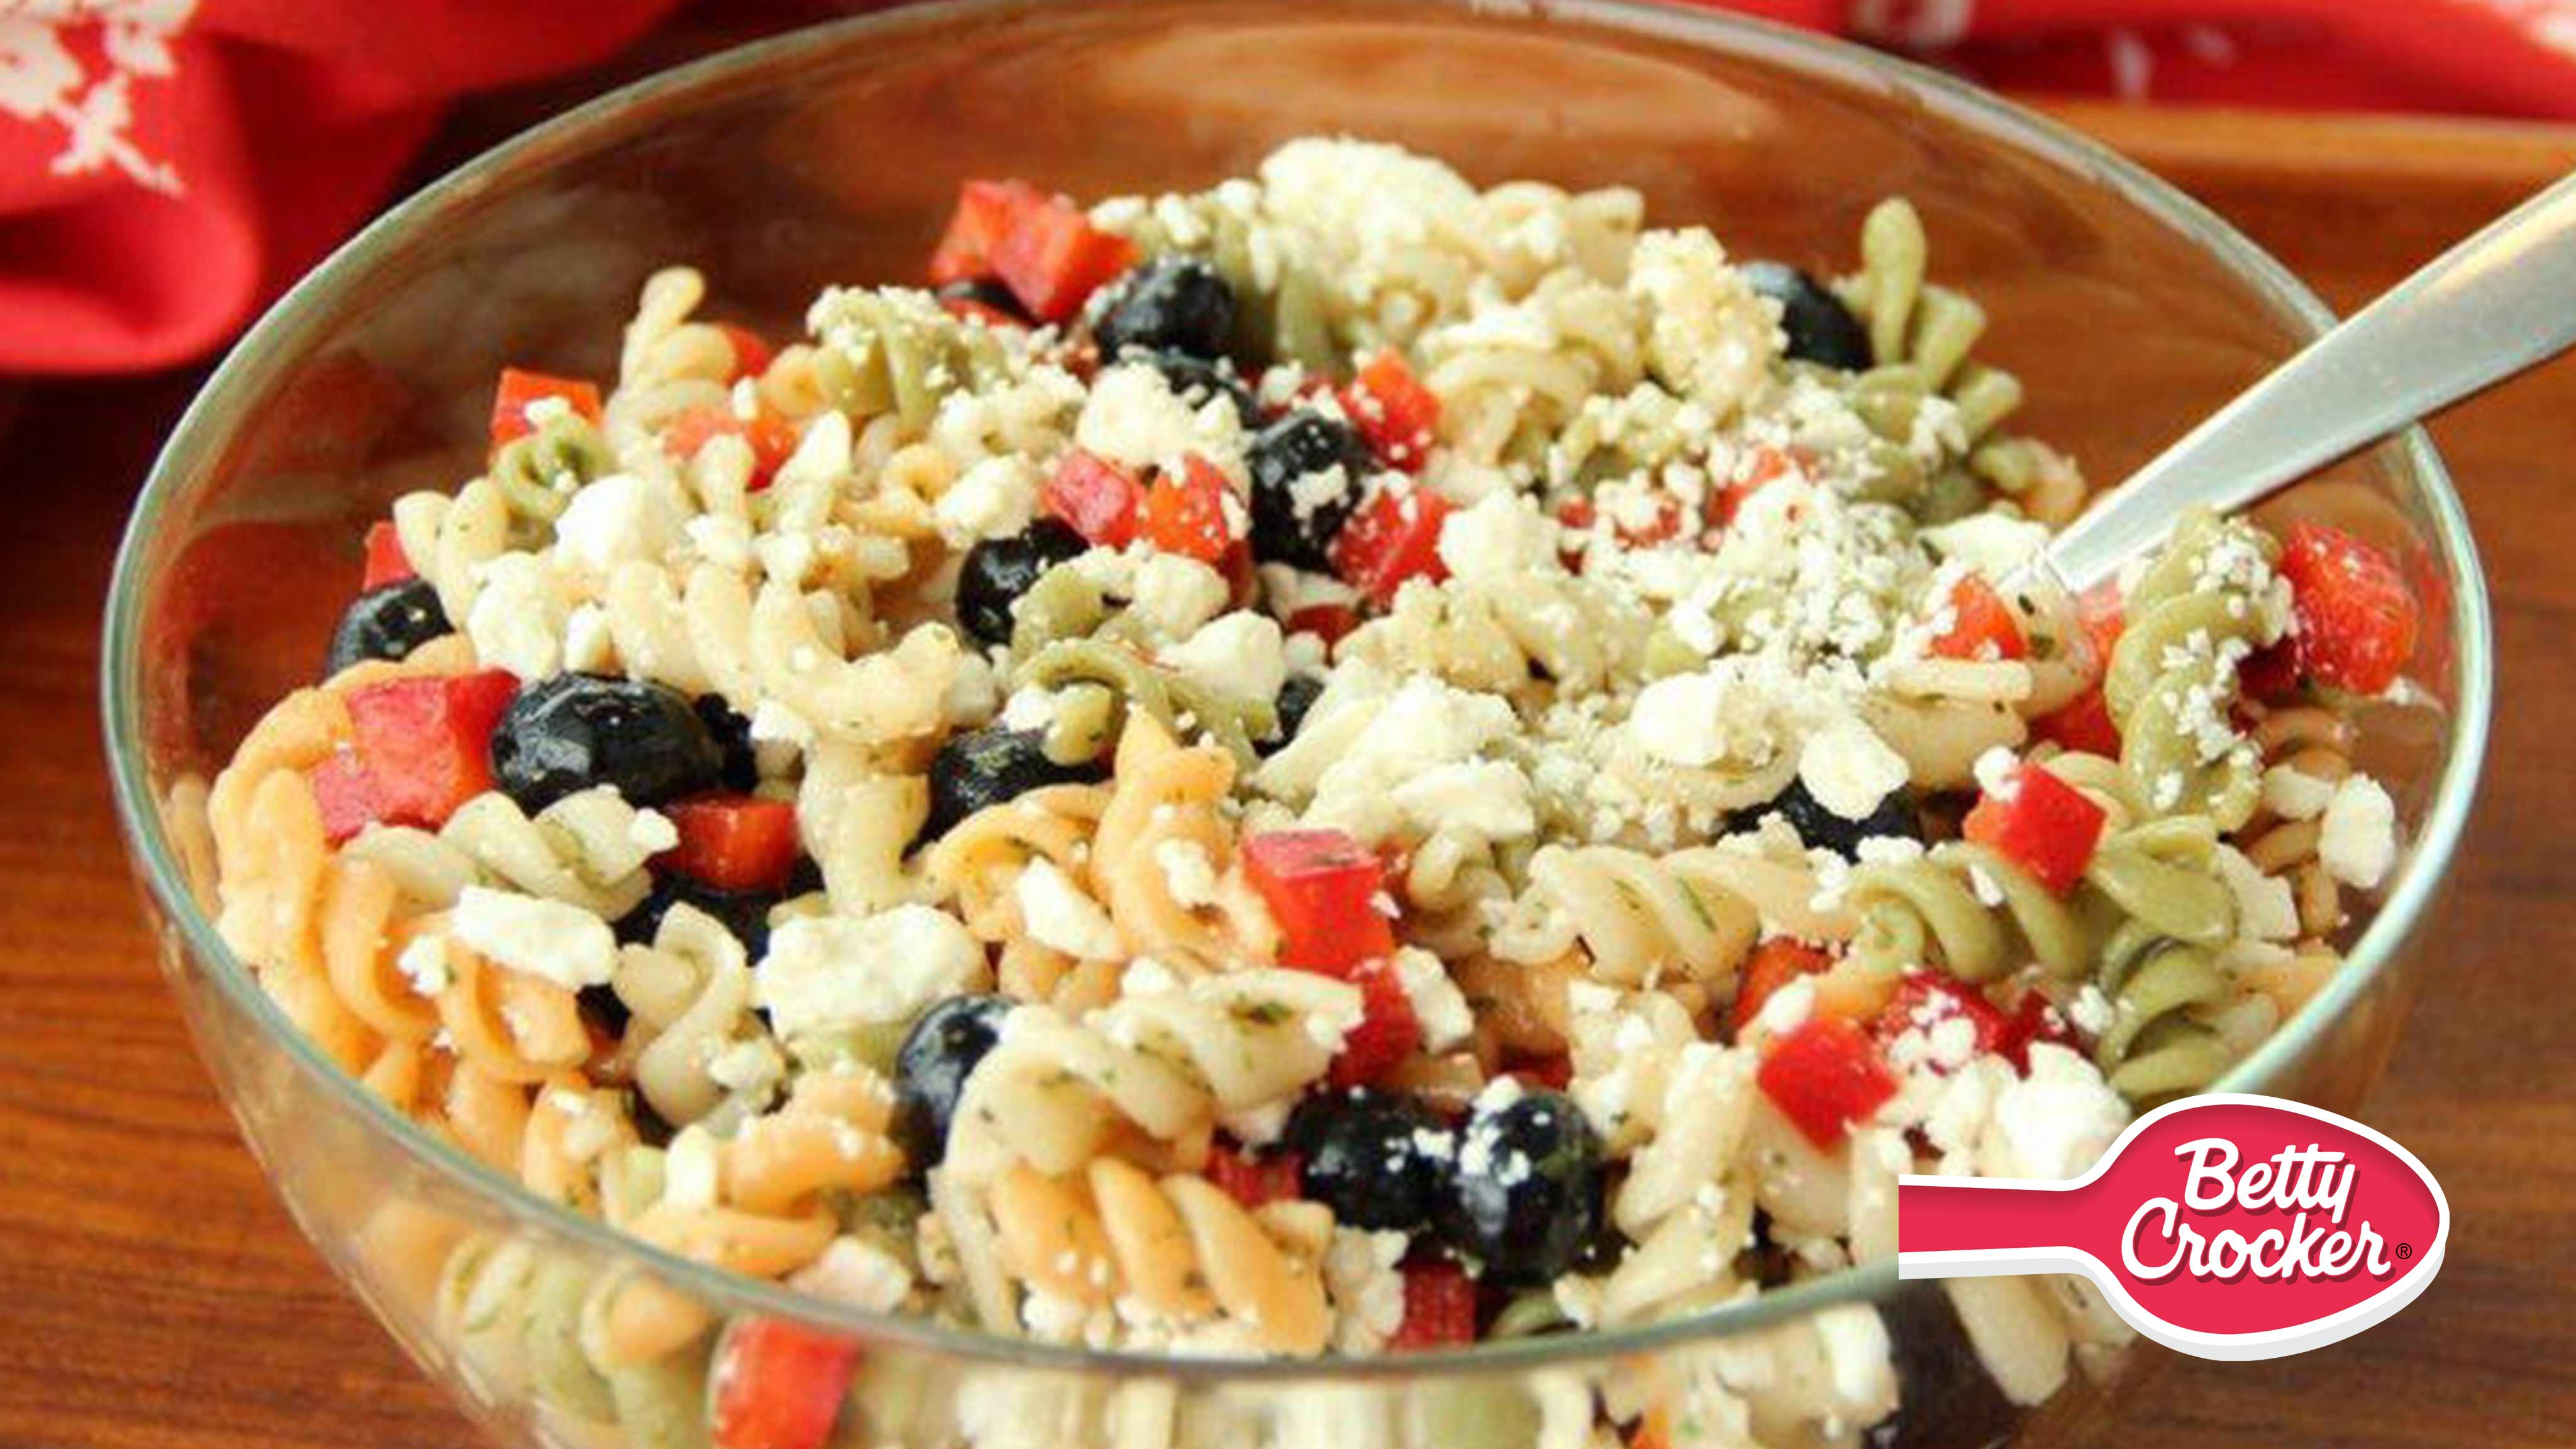 Image for Recipe Red, White and Blueberry Pasta Salad